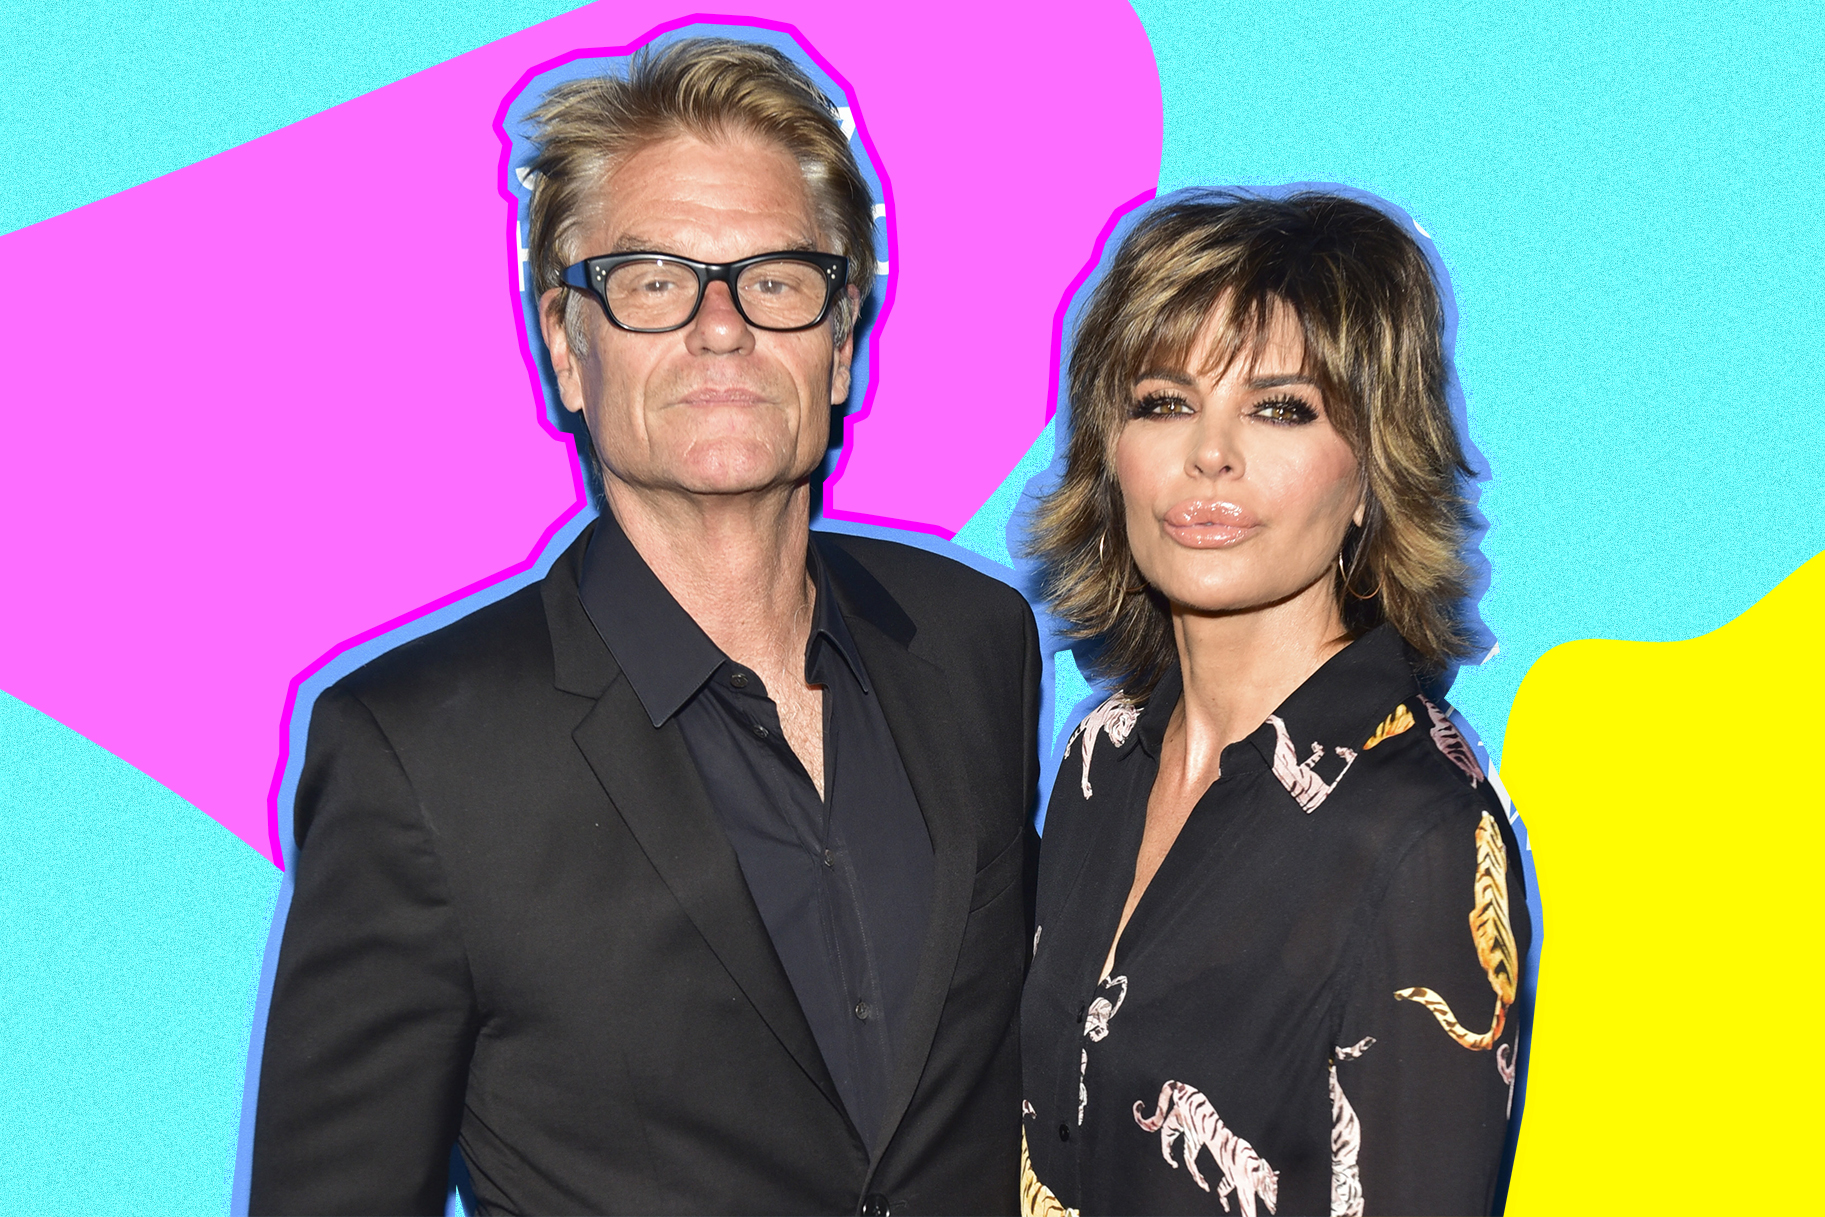 lisa-rinna-harry-hamlin-rhobh-hairstyle.jpg